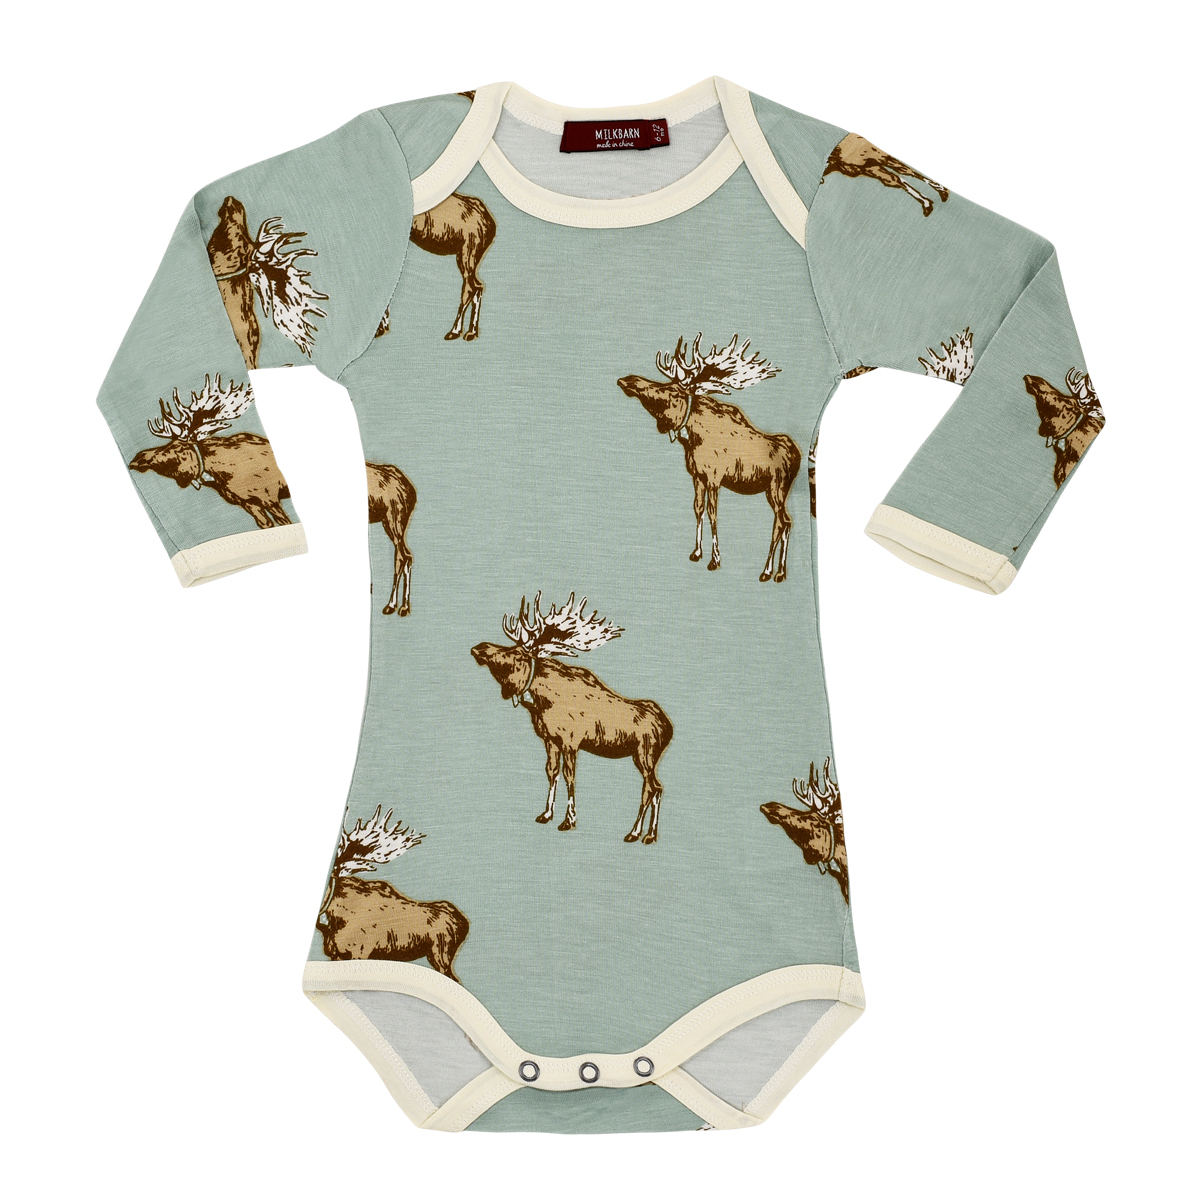 Milkbarn Long Sleeve Bamboo Bodysuit in Blue Moose